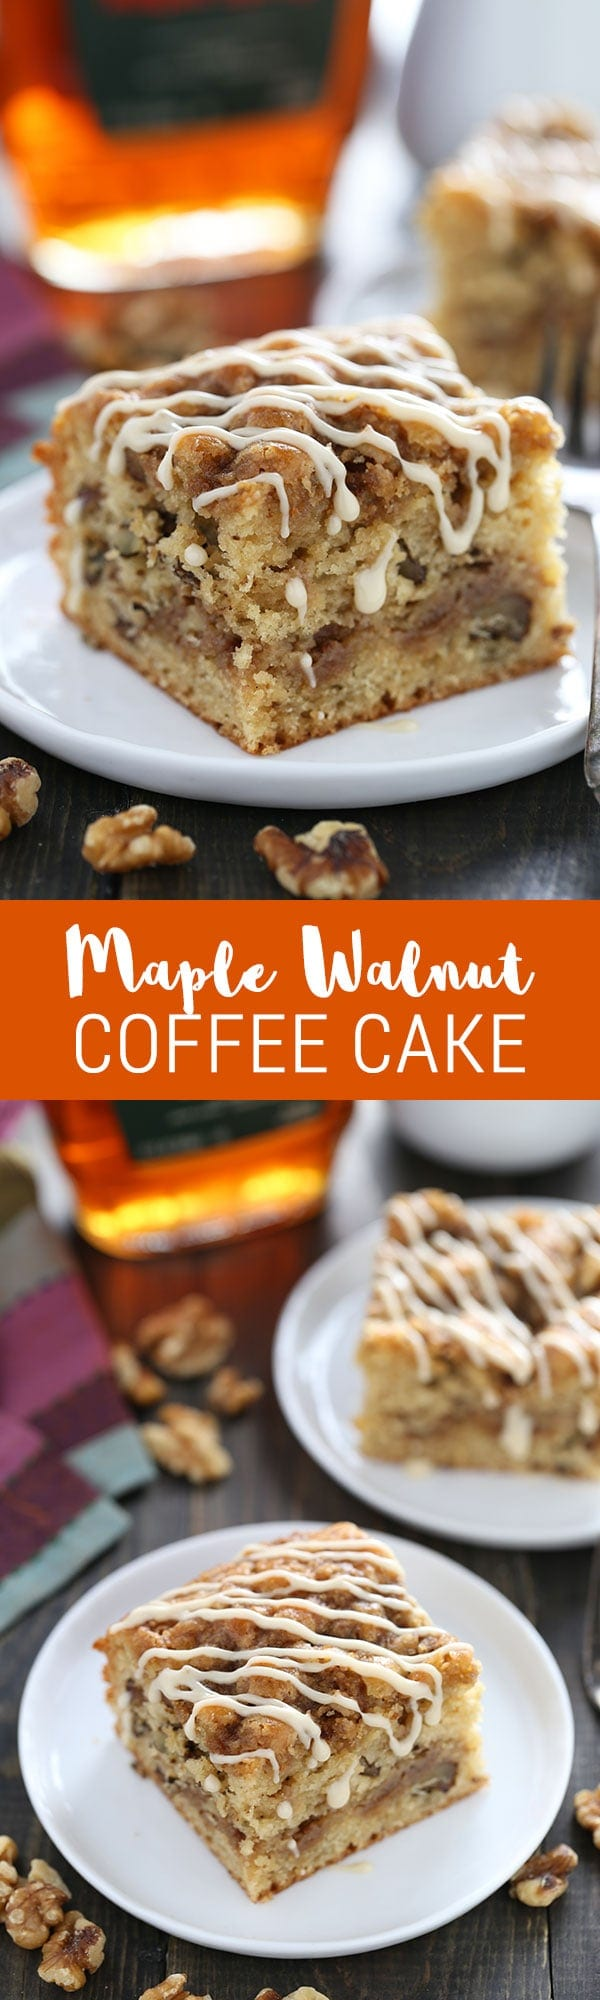 We LOVED this coffee cake! Super quick & easy to make, no mixer required!